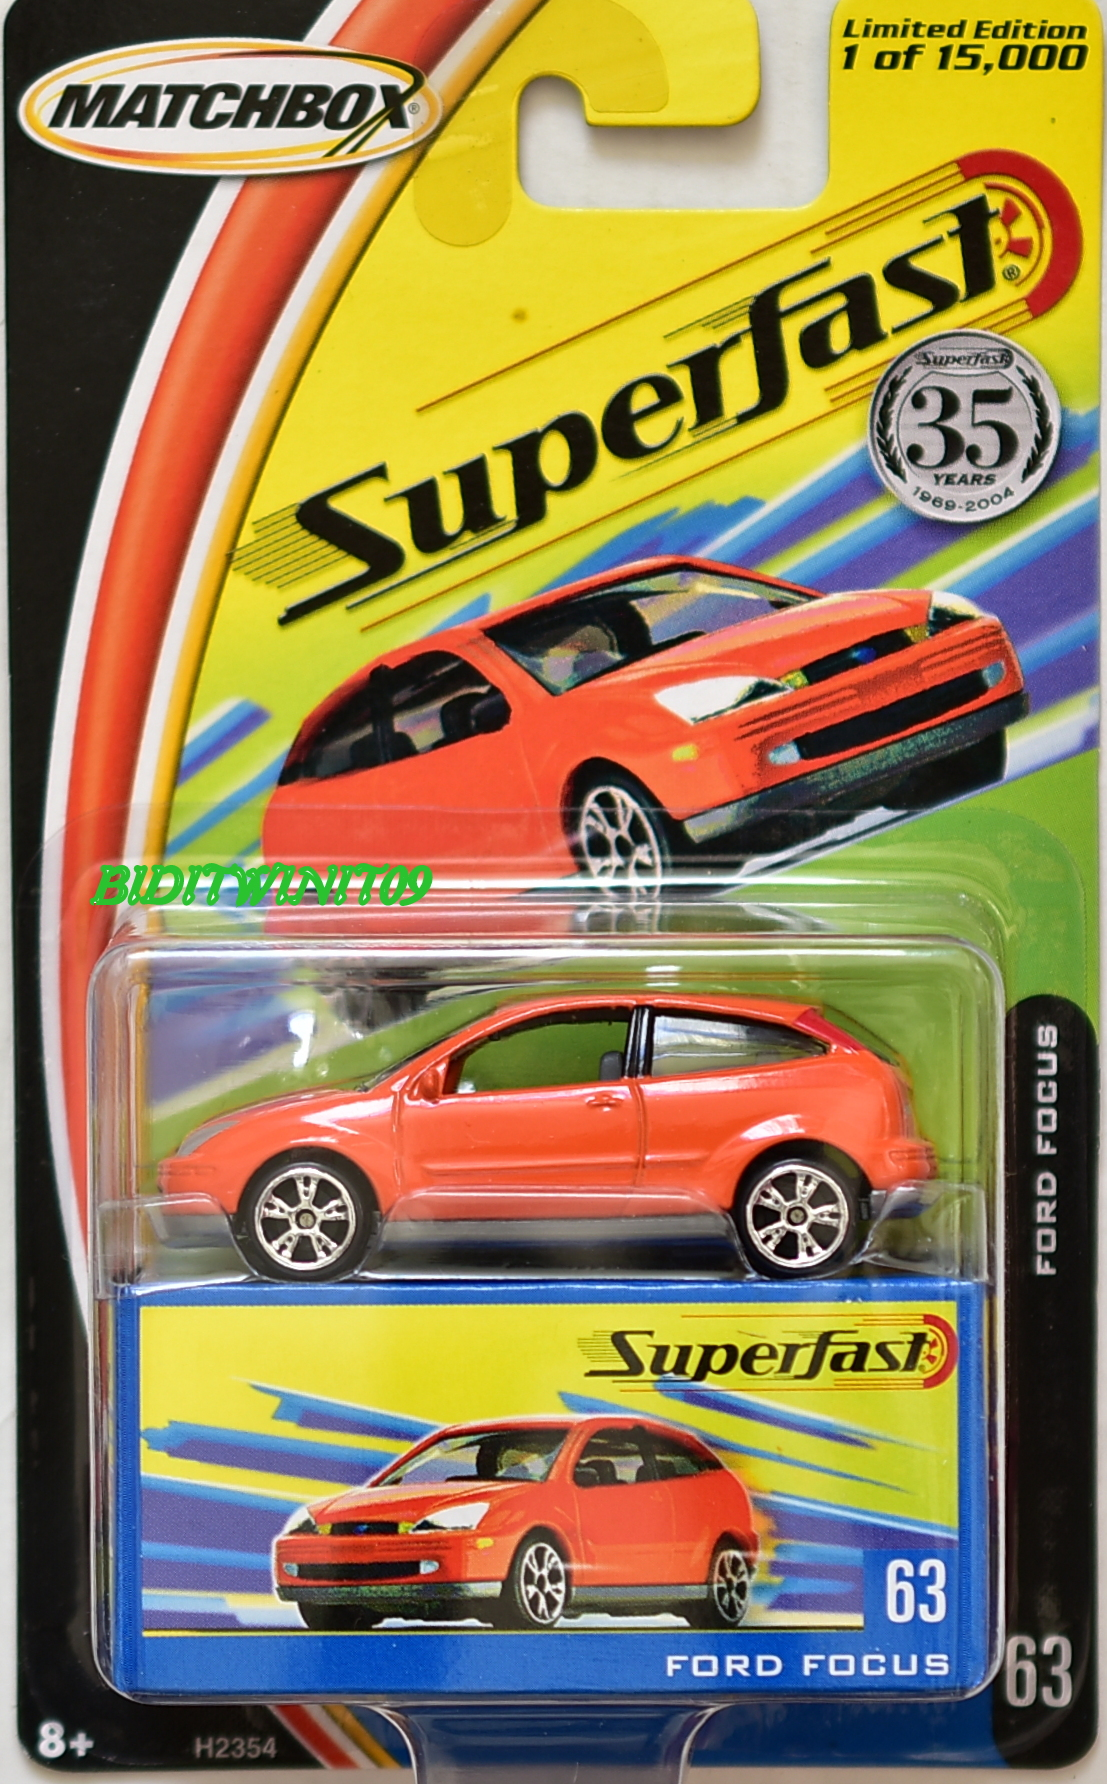 MATCHBOX 2004 35YRS SUPERFAST FORD FOCUS #63